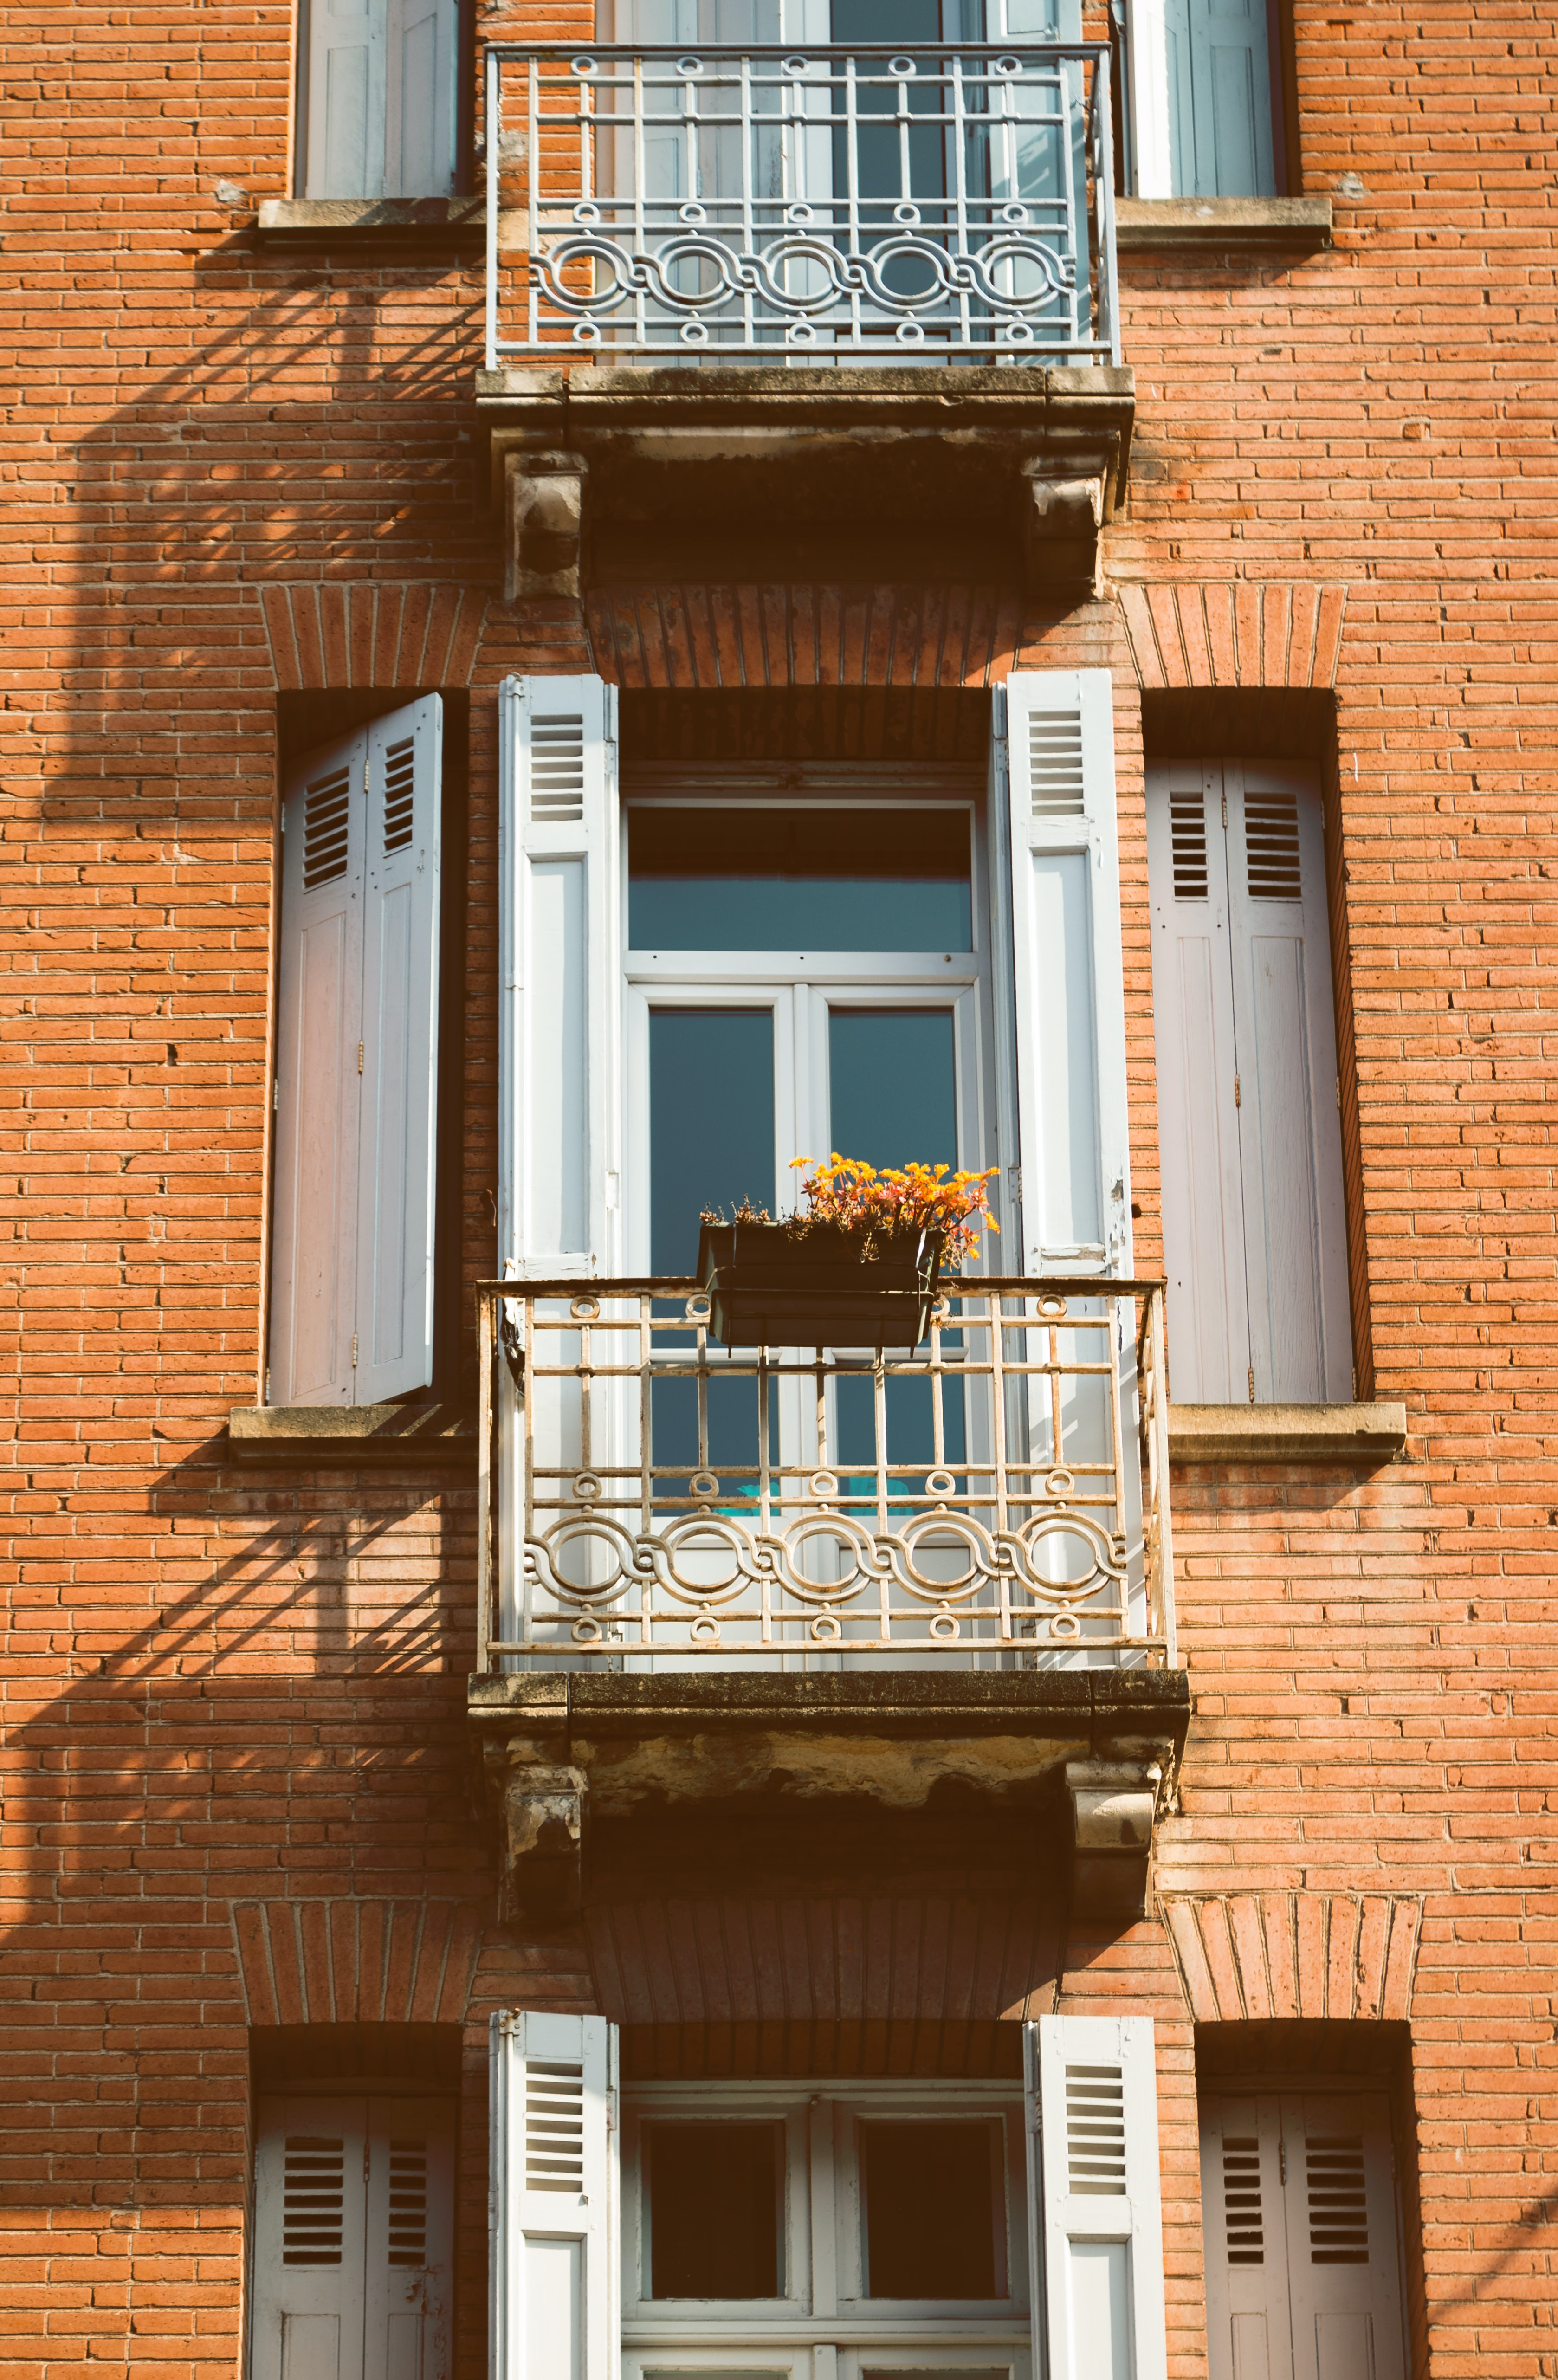 apartment window during daytime